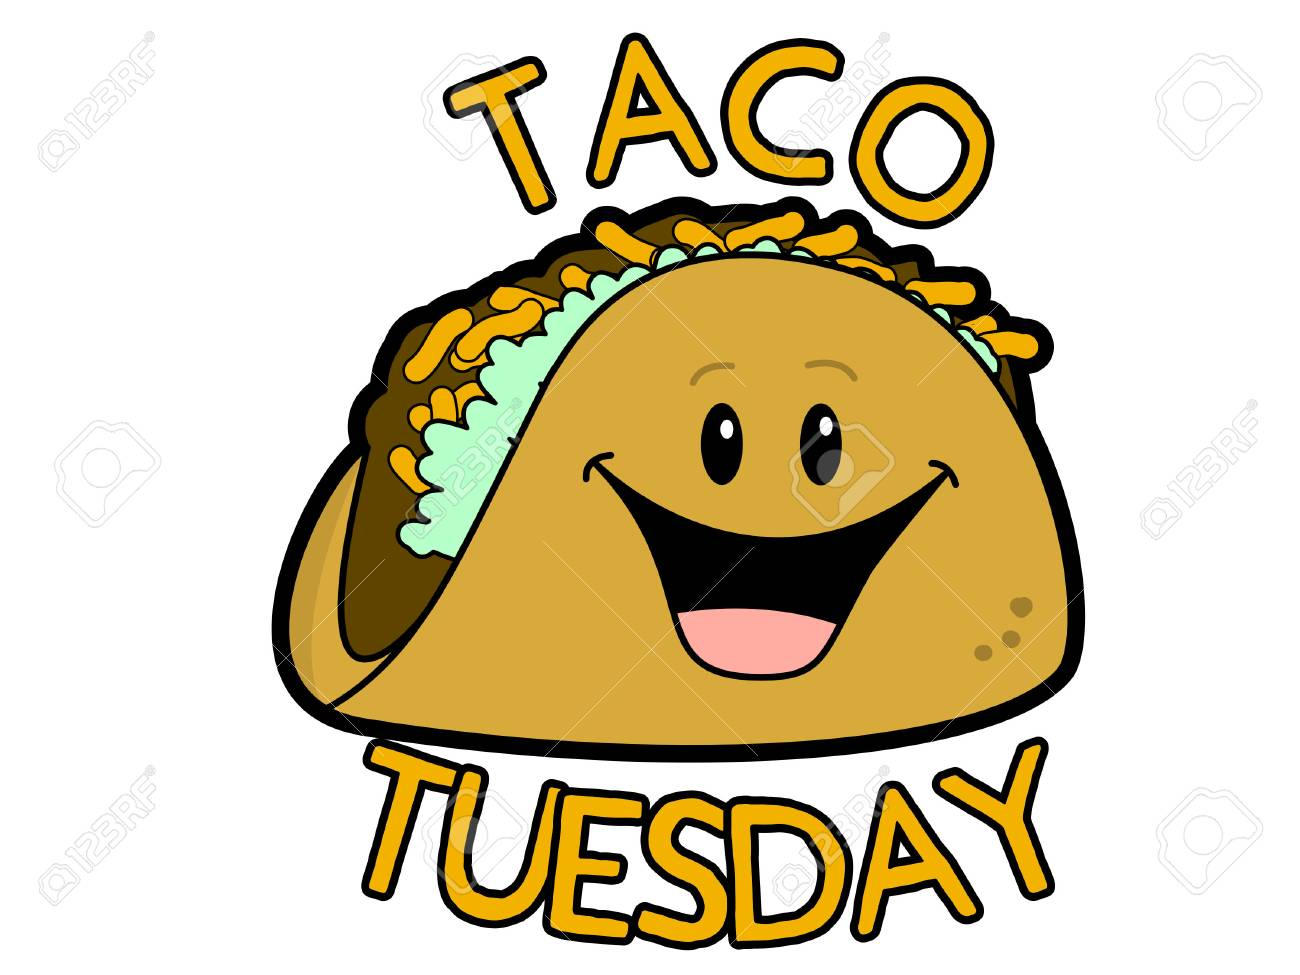 taco tuesday cartoon sign vector illustration royalty free cliparts rh 123rf com happy tuesday clip art the office happy tuesday clip art images